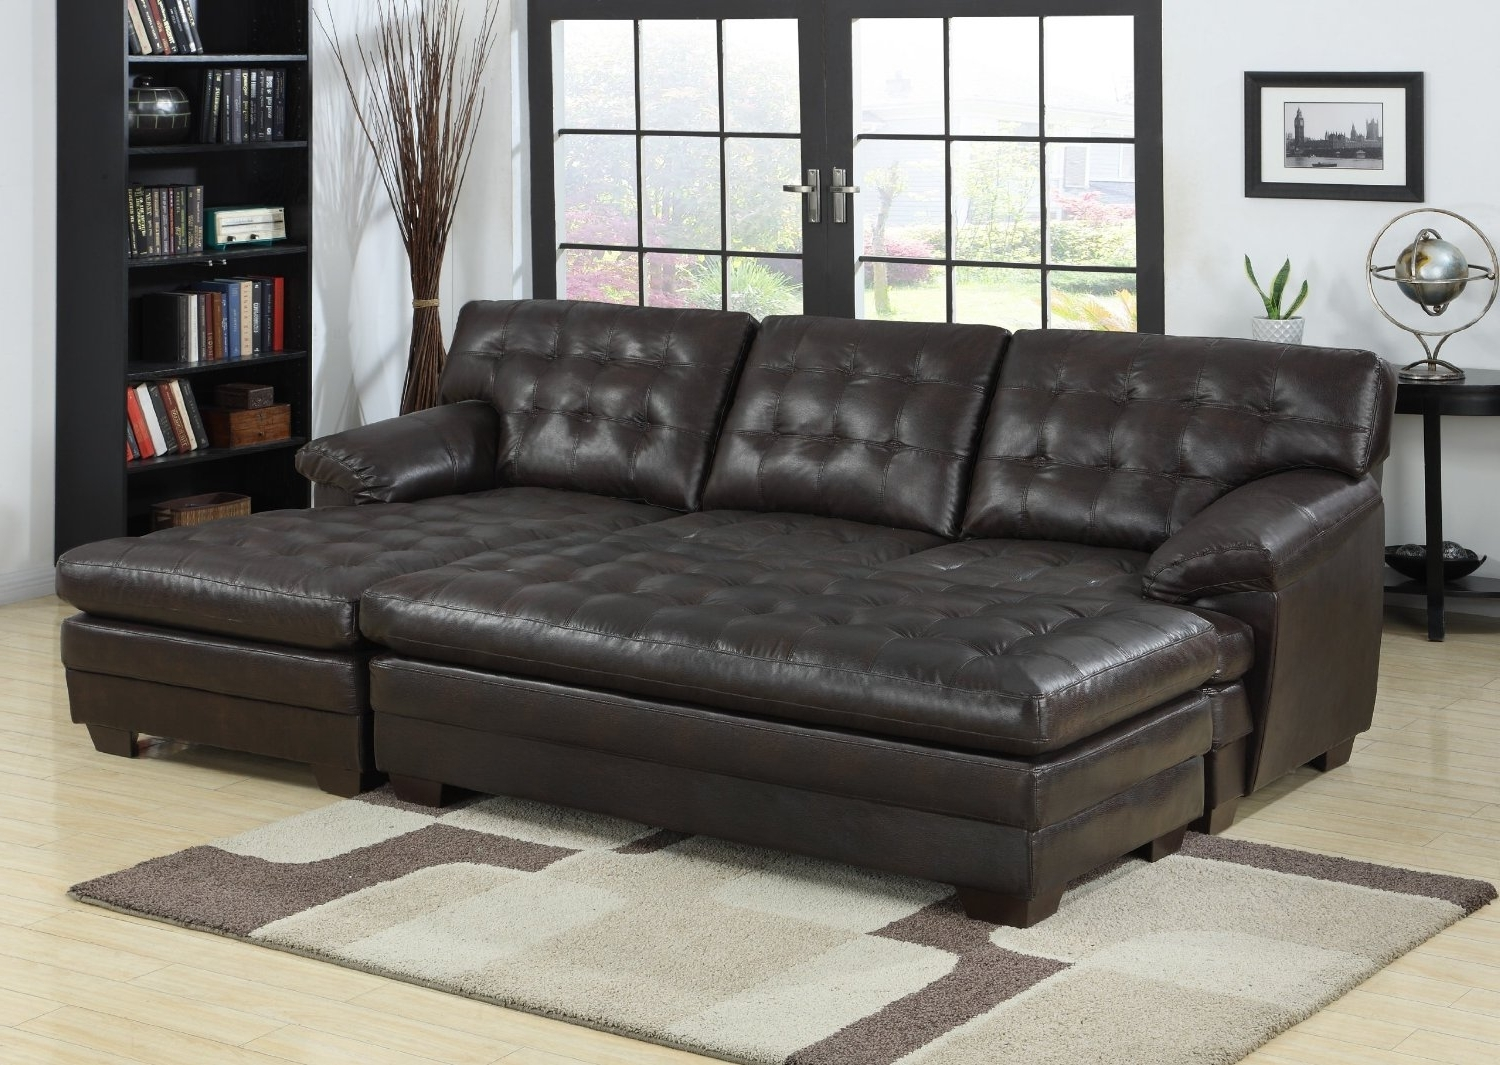 Ethan Allen Sectional Sofas Double Chaise Sectional U Shaped Within Most Popular Sectional Sofas With Chaise Lounge (View 11 of 15)